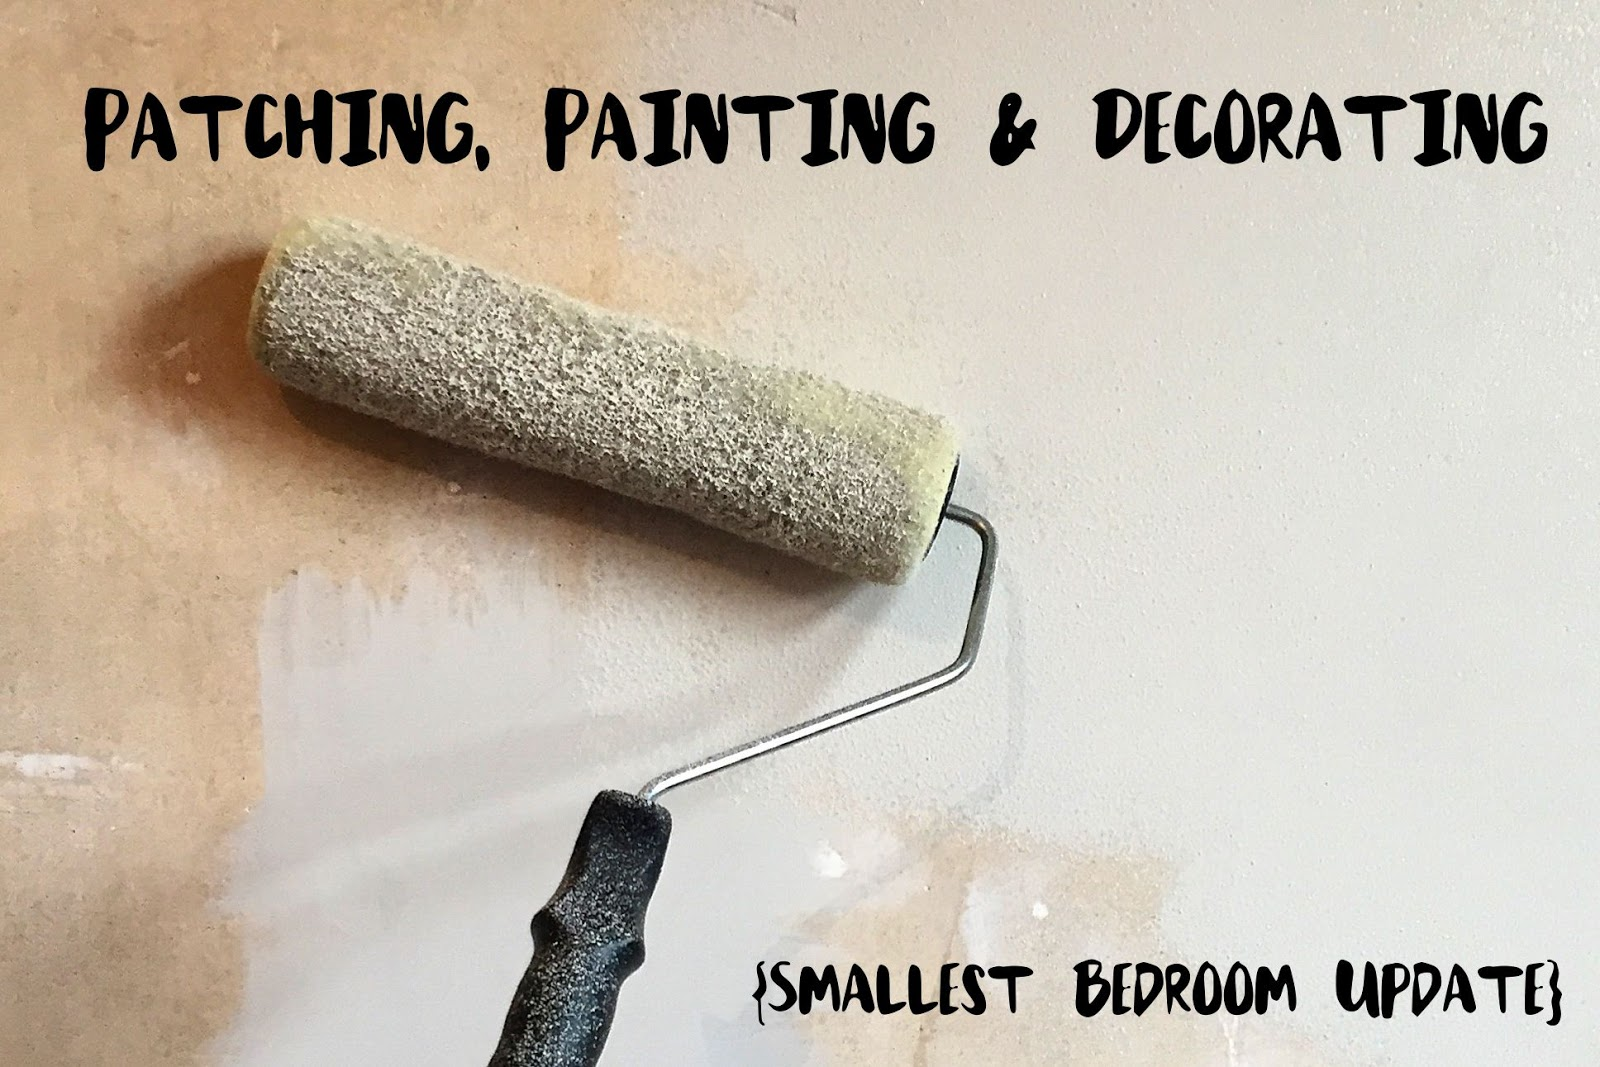 Patching, Painting and Decorating